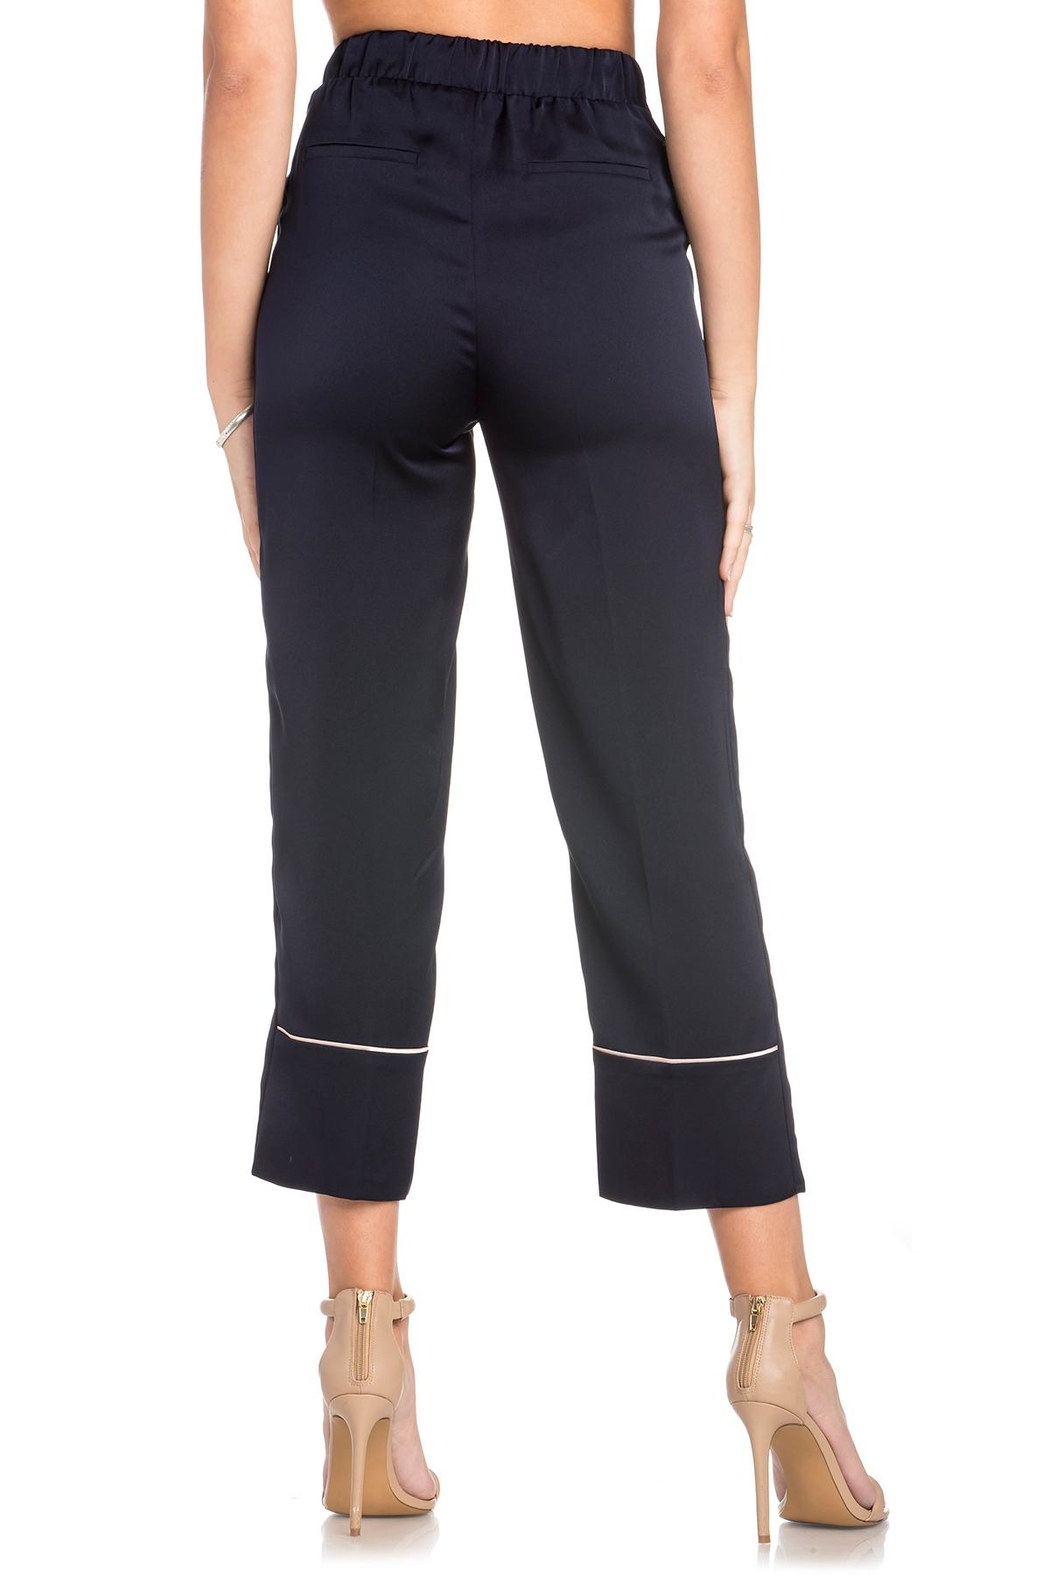 Dance And Marvel Ankle Pants From New York City By Dor L